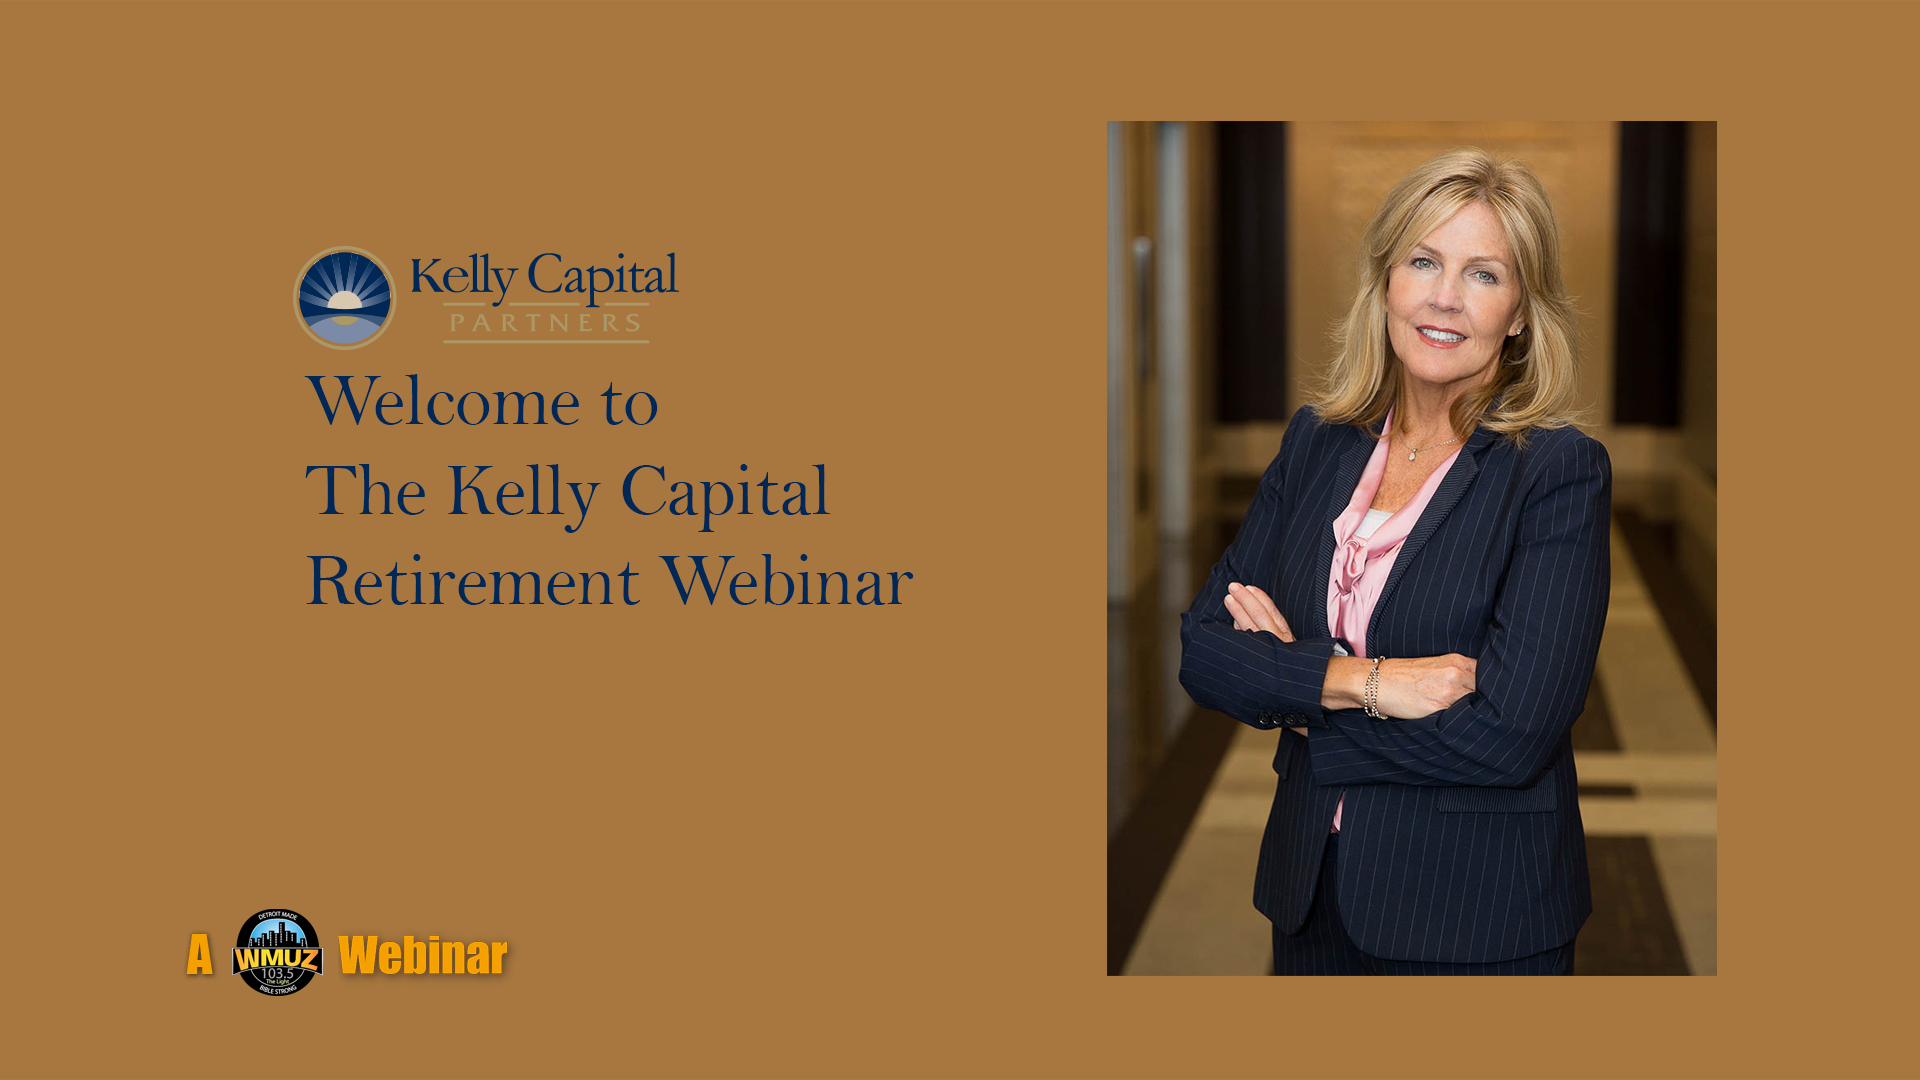 Kelly Capital video poster